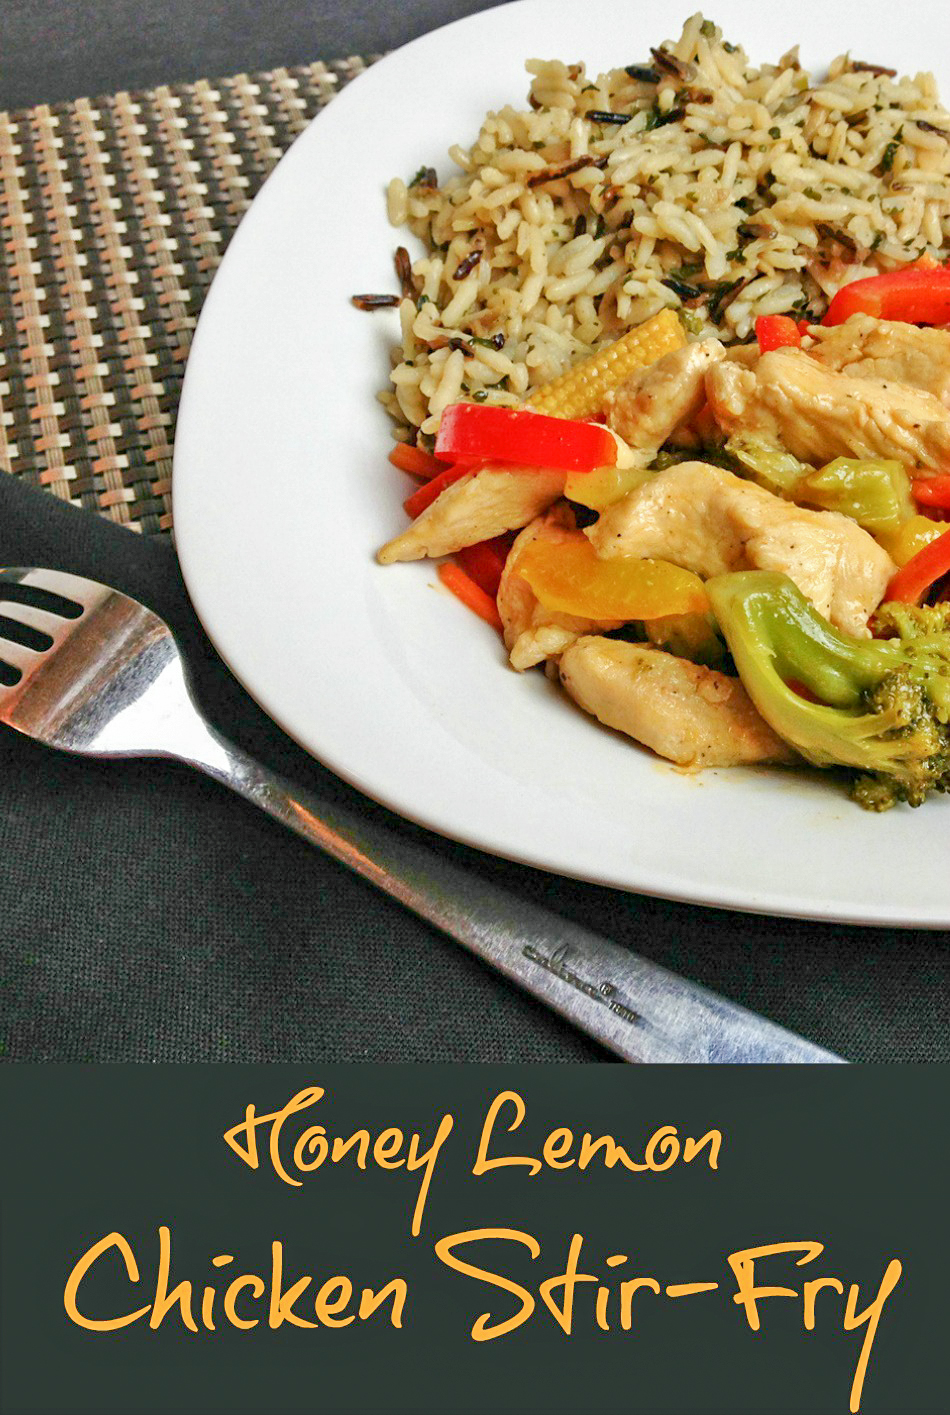 Honey Lemon Chicken Stir-Fry banner 3